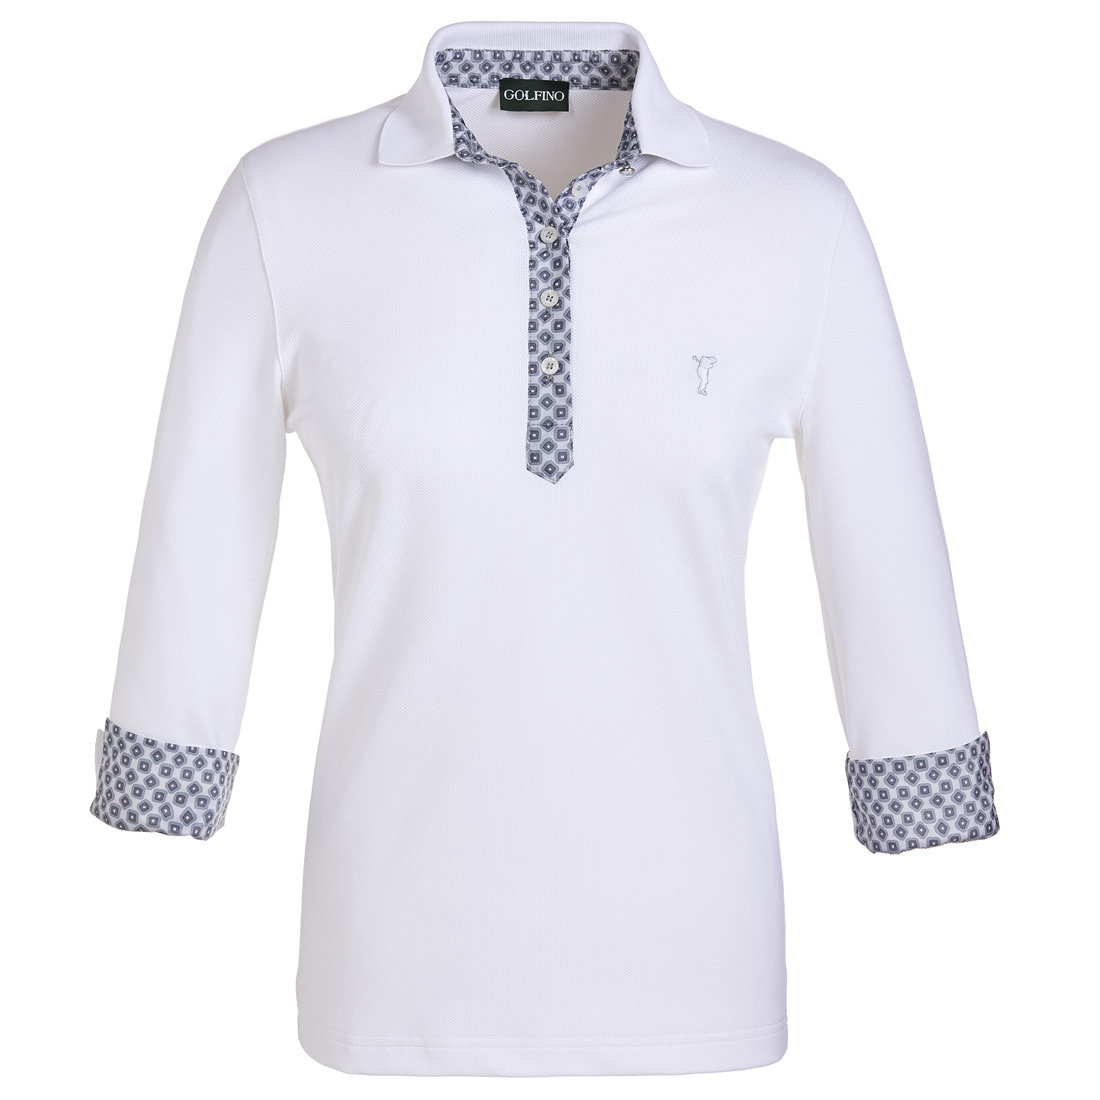 Damen 3/4 Arm Golfpolo mit Moisture Management Funktion